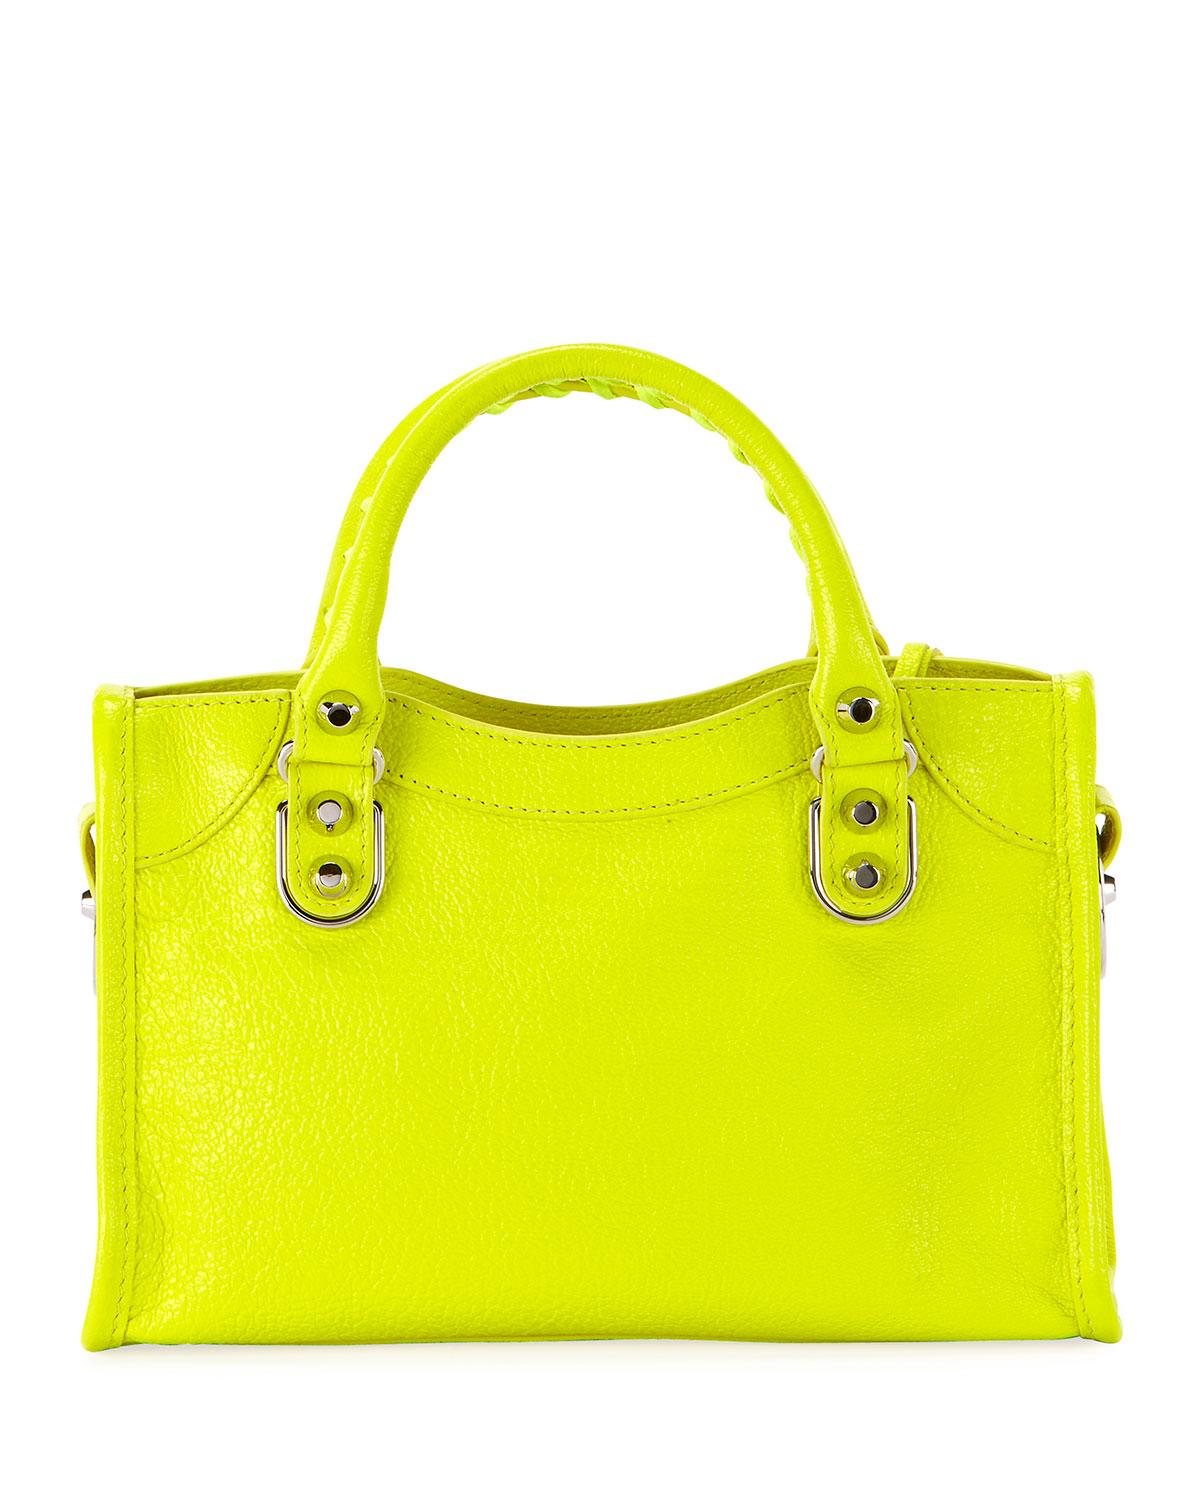 3c470a2bd1 Balenciaga - Green Metallic Edge Mini City Aj Shiny Leather Bag - Lyst.  View fullscreen